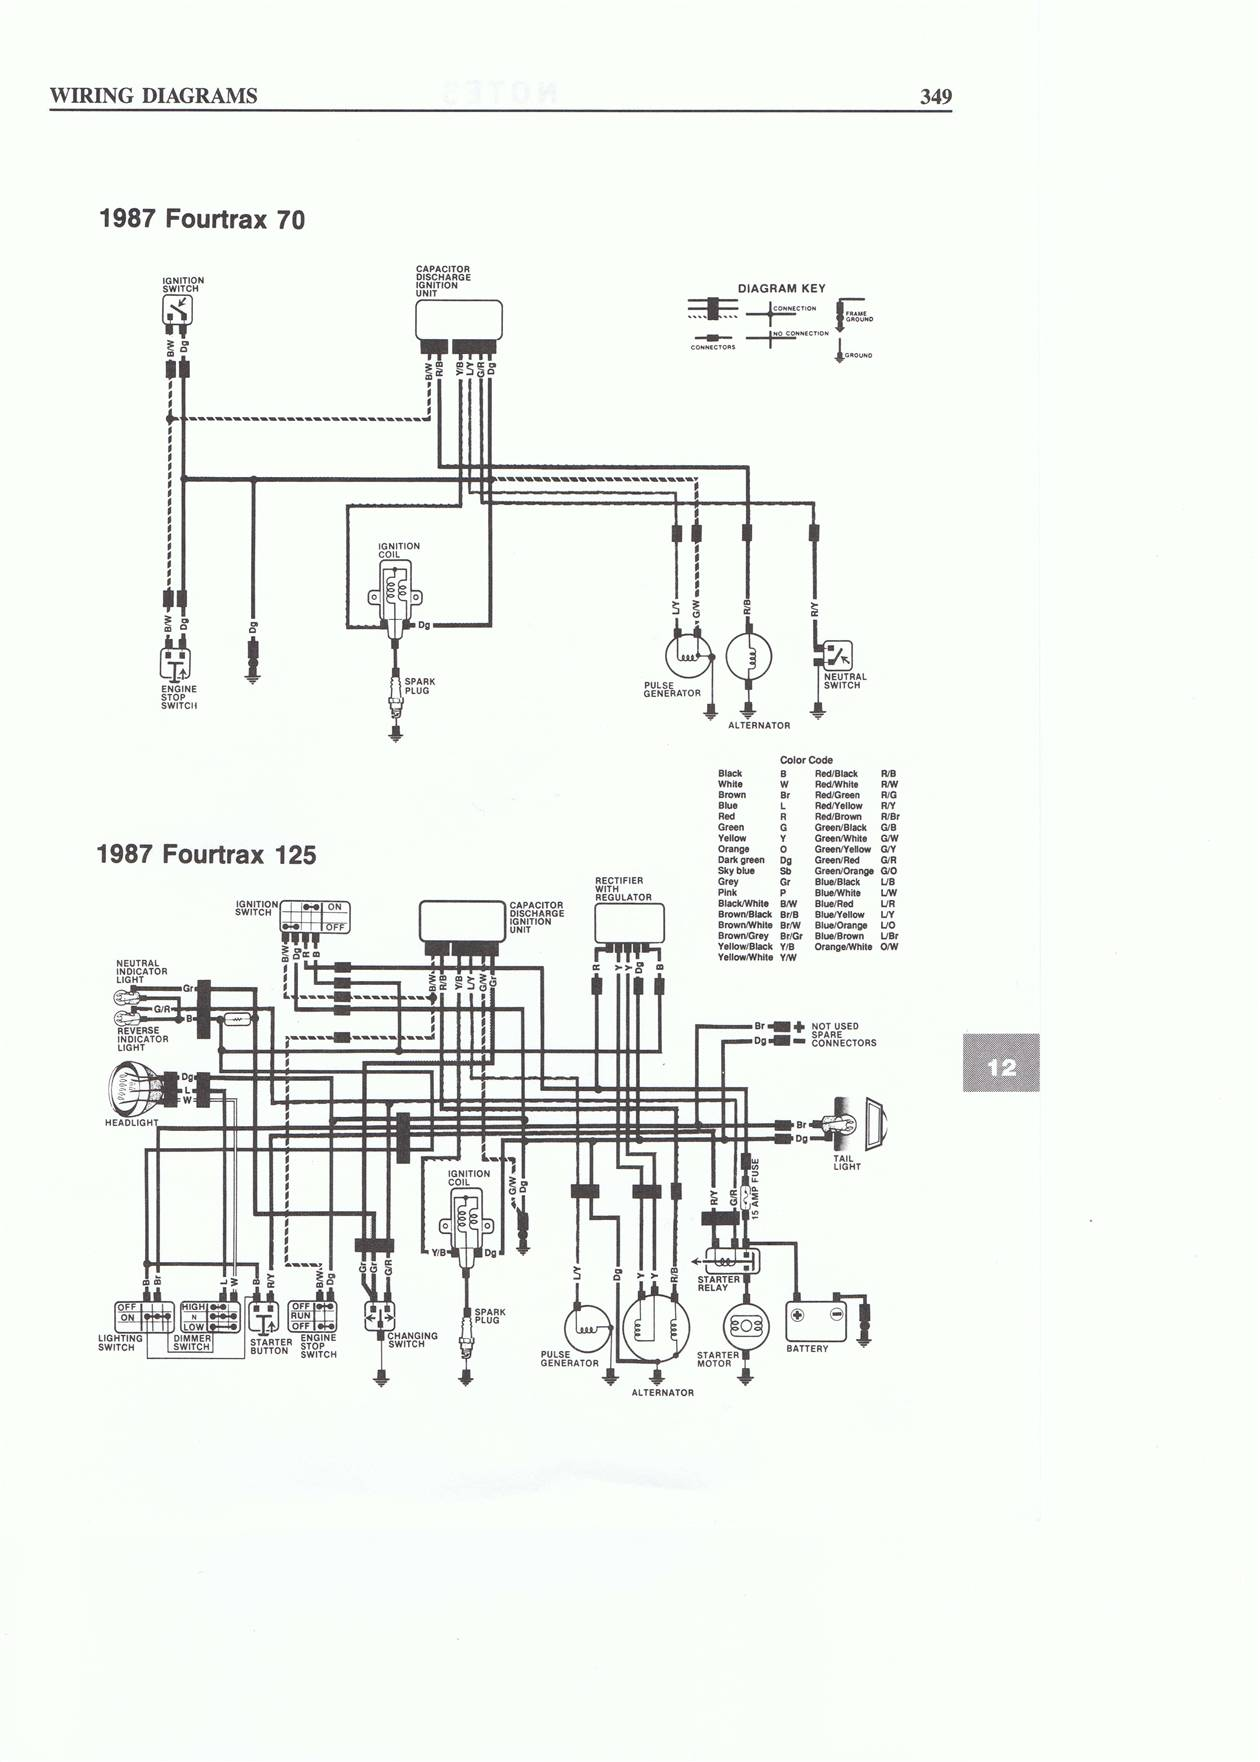 wiring diagram trailer lights with Gy6 Engine Wiring Diagram on P 0996b43f80cb0d82 besides 6ex9l Ford E450 Econoline 2003 Ford E450 Cutaway Chassis besides Index as well T10208745 Need know together with 2001 Dodge Ram 1500 4x4 Trailer Taillights Brake Lights Somewhere Throughout 2001 Dodge Ram Fuse Box.